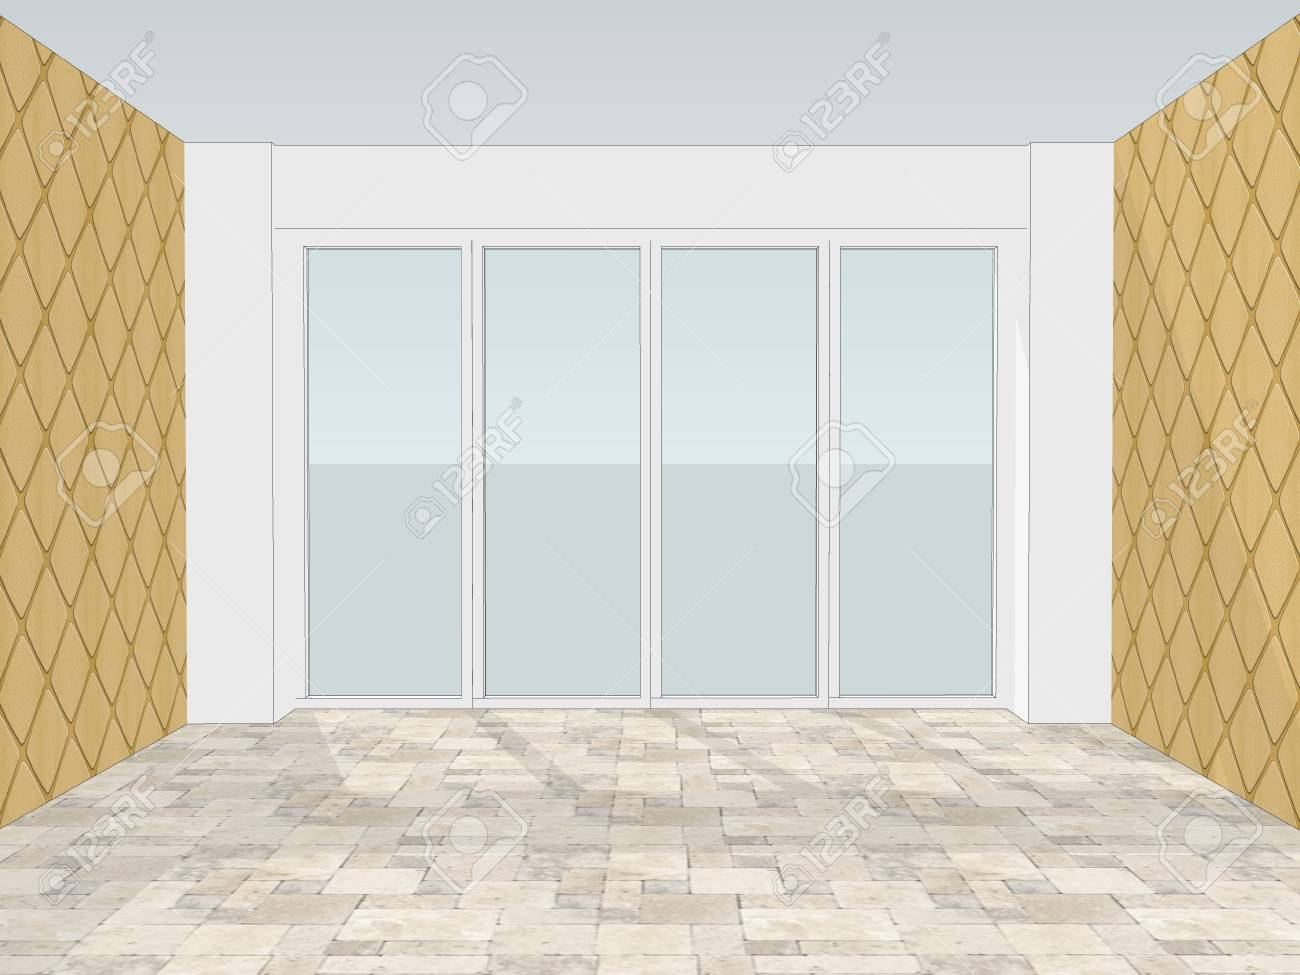 Empty Office Room With Window And Decorative Wallpaper On The ...